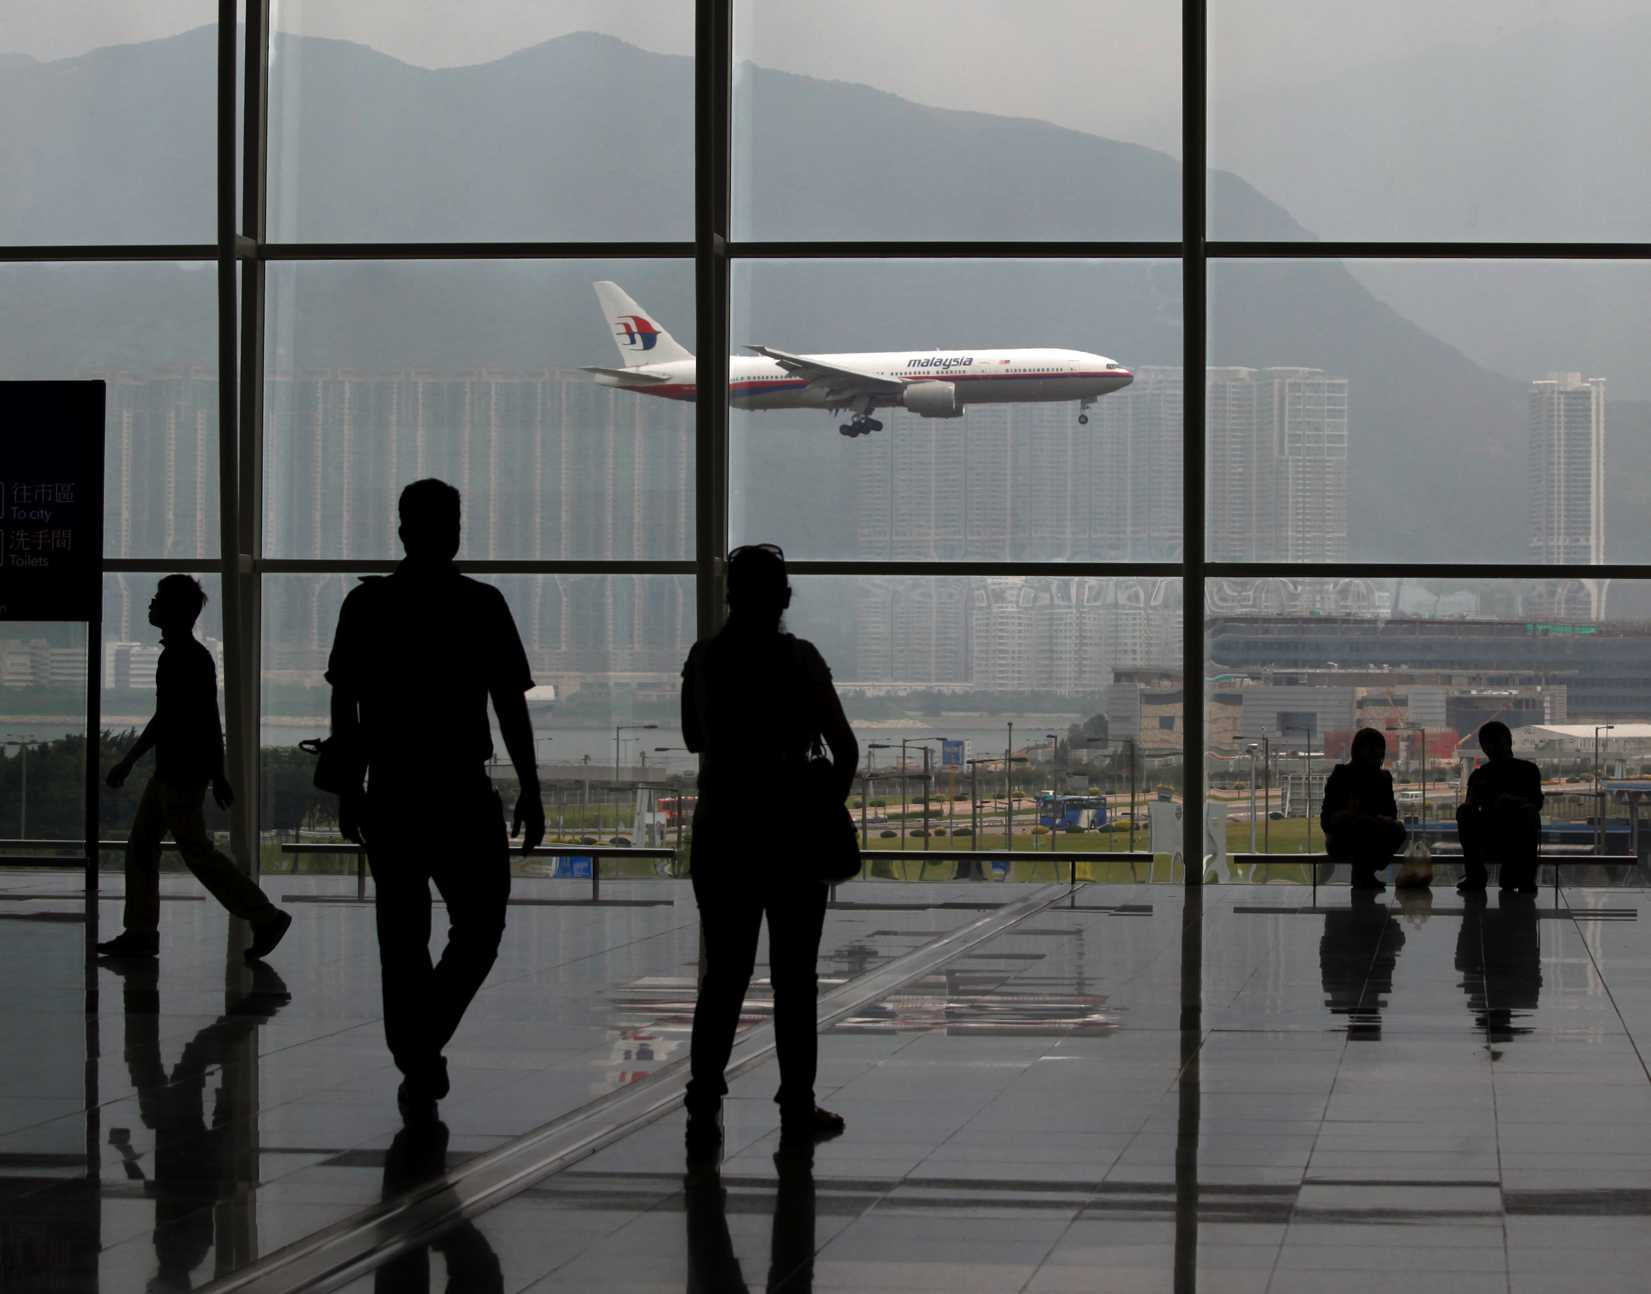 A Malaysia Airlines Boeing 777 plane is seen from the departure hall at the Hong Kong International Airport in a file photo taken in June 2011